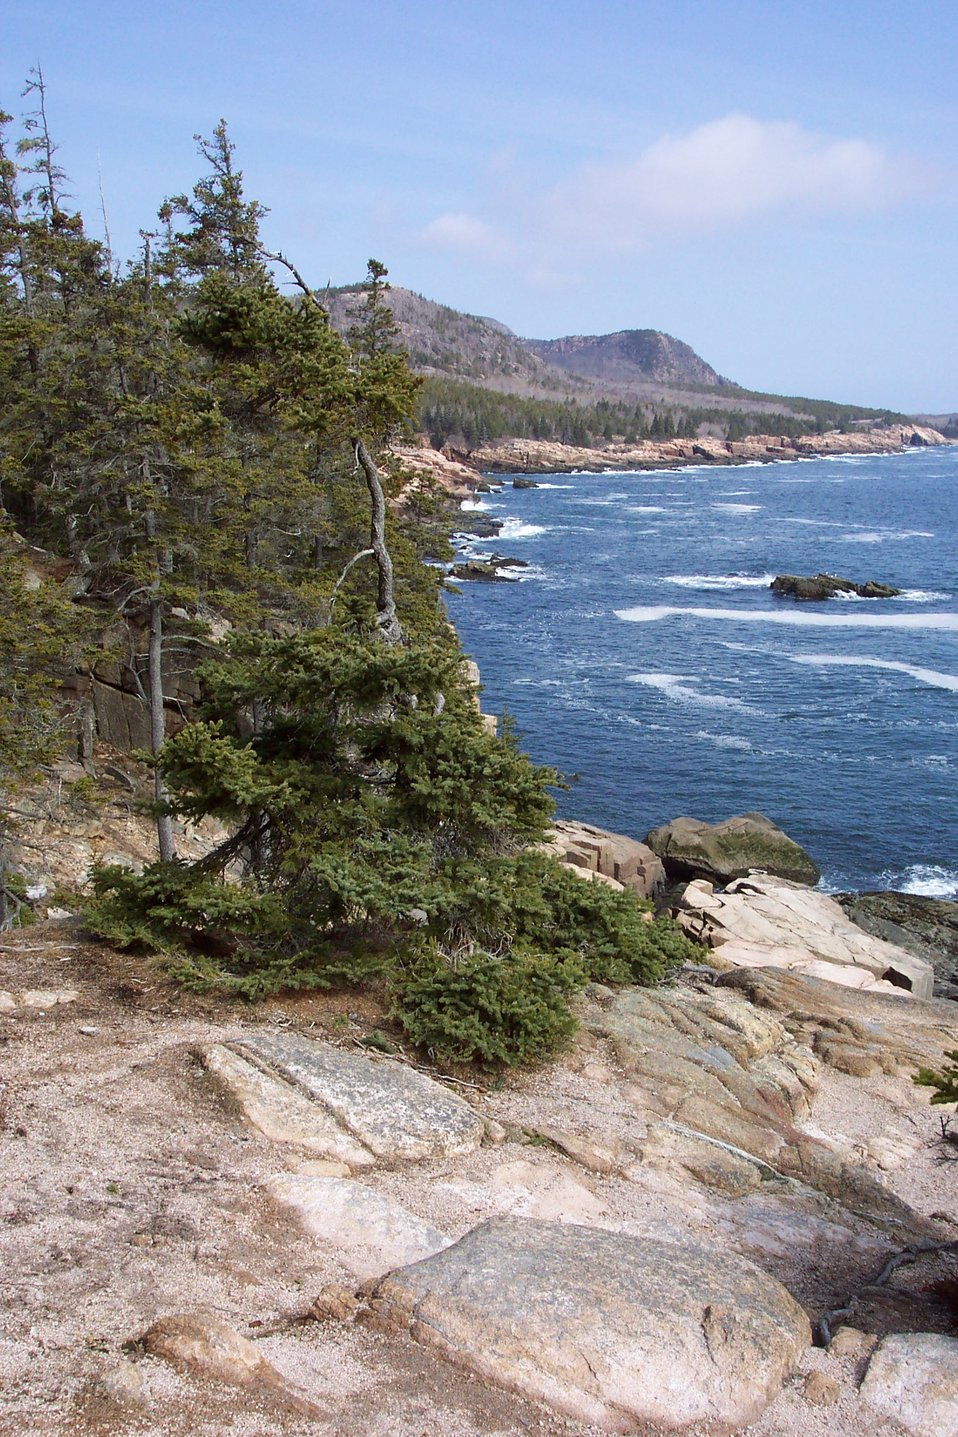 Looking north from the Otter Cliffs.